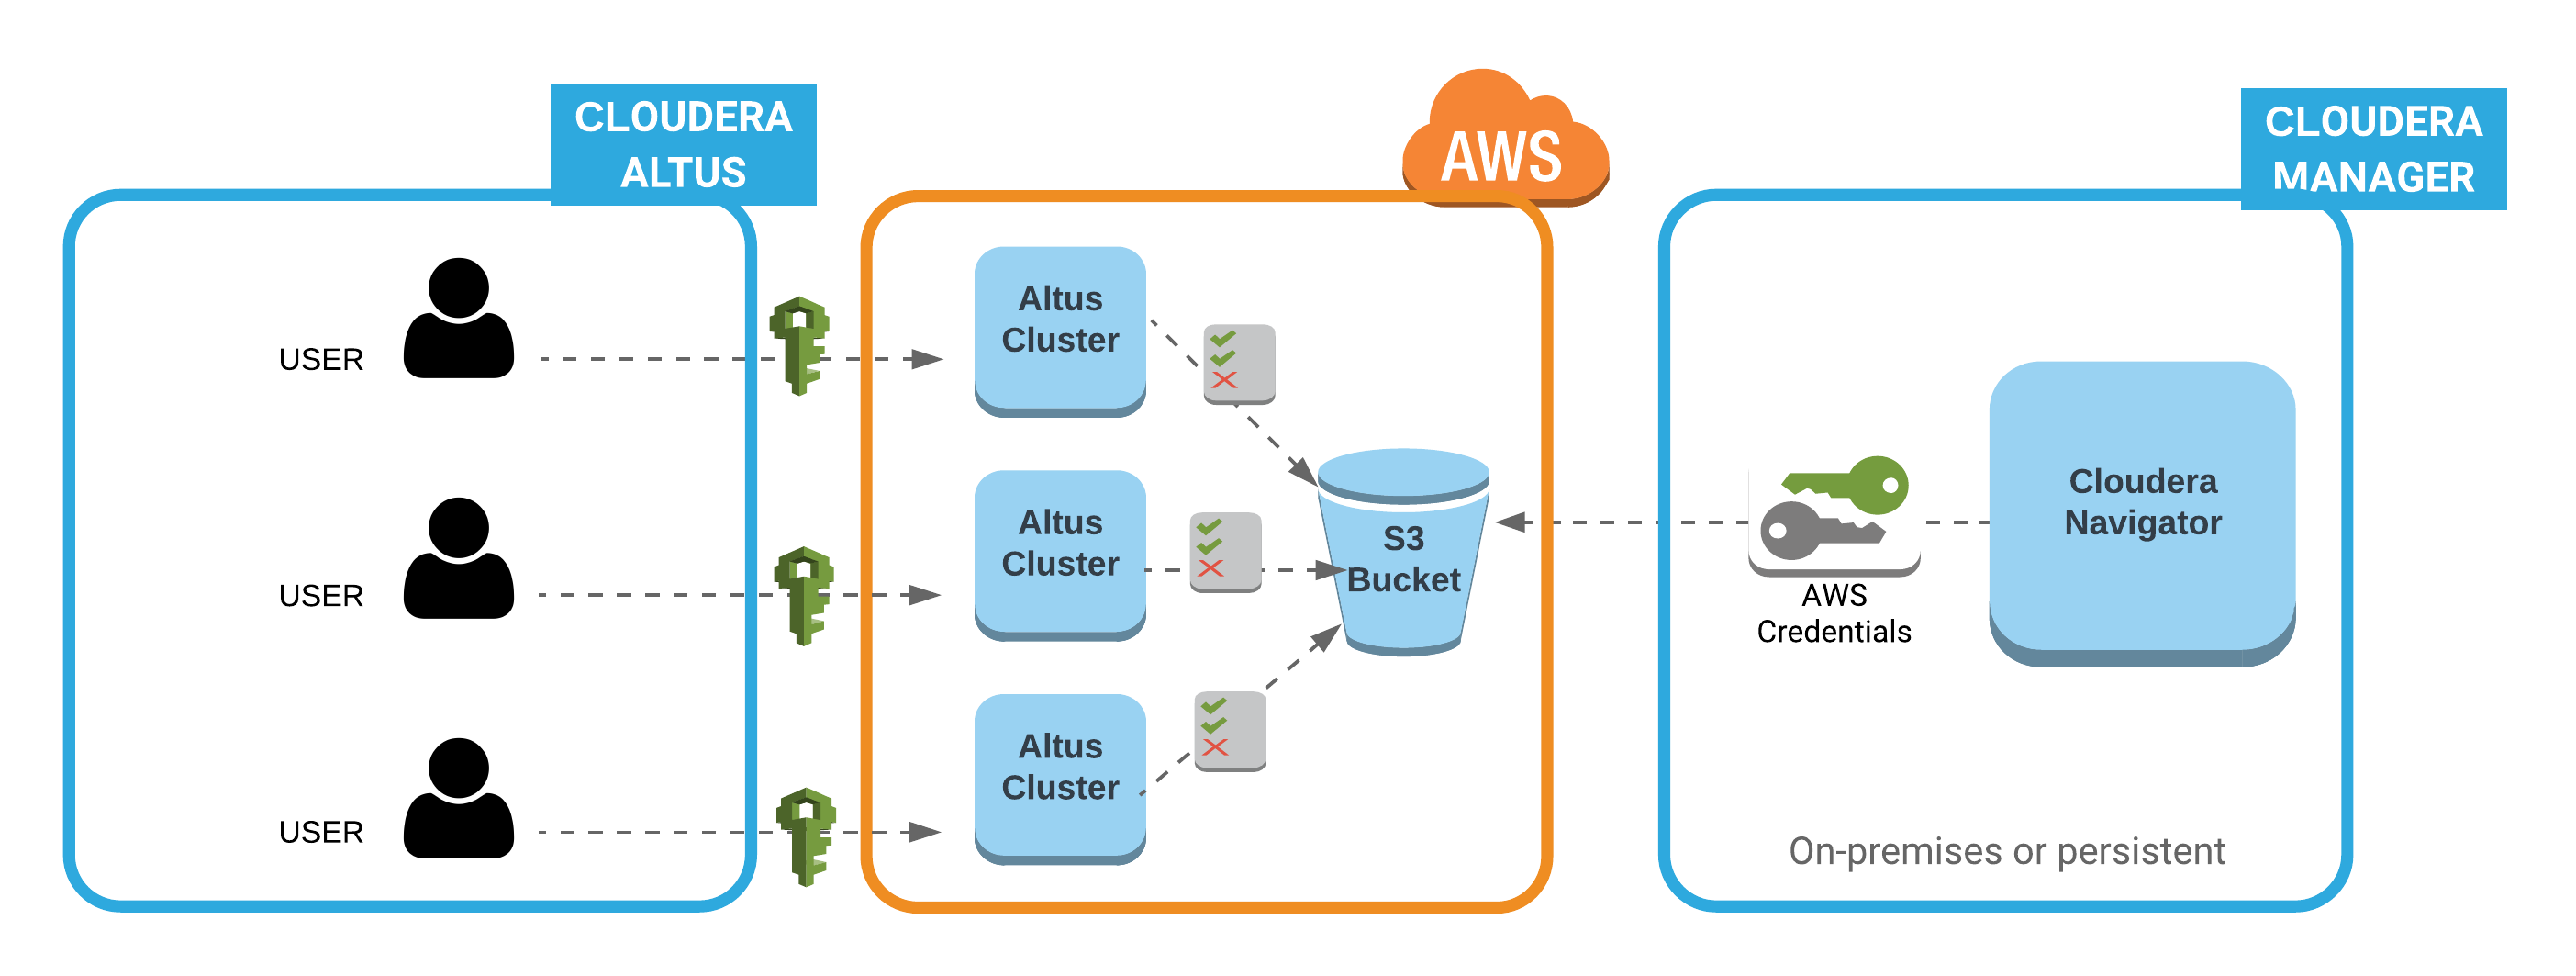 Configuring Extraction for Altus Clusters on AWS   5 16 x   Cloudera